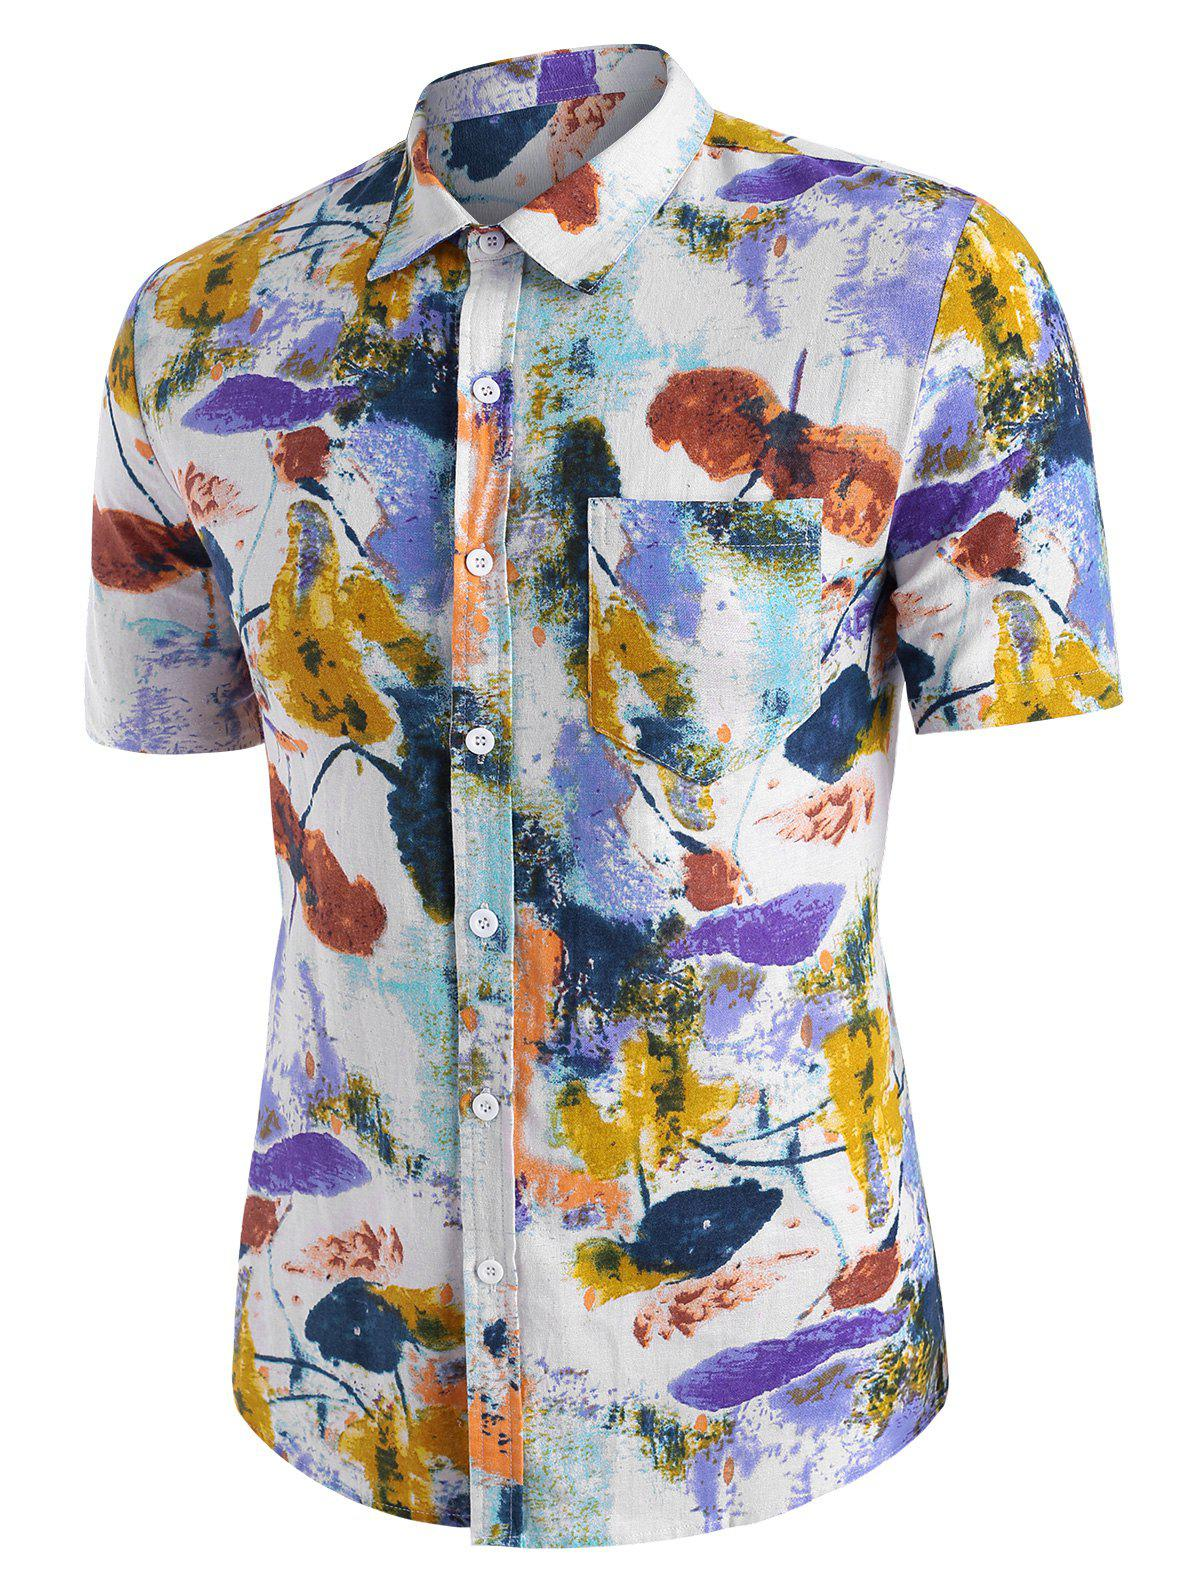 Hot Flower Ink Painting Print Button Down Shirt